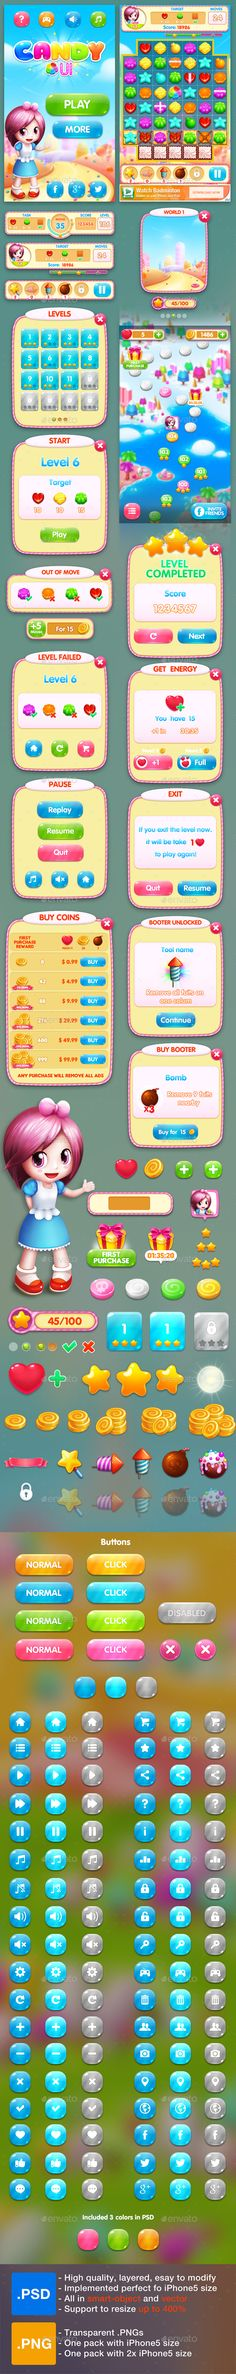 Sweety Game UI Template PSD, Transparent PNG #gui #appui